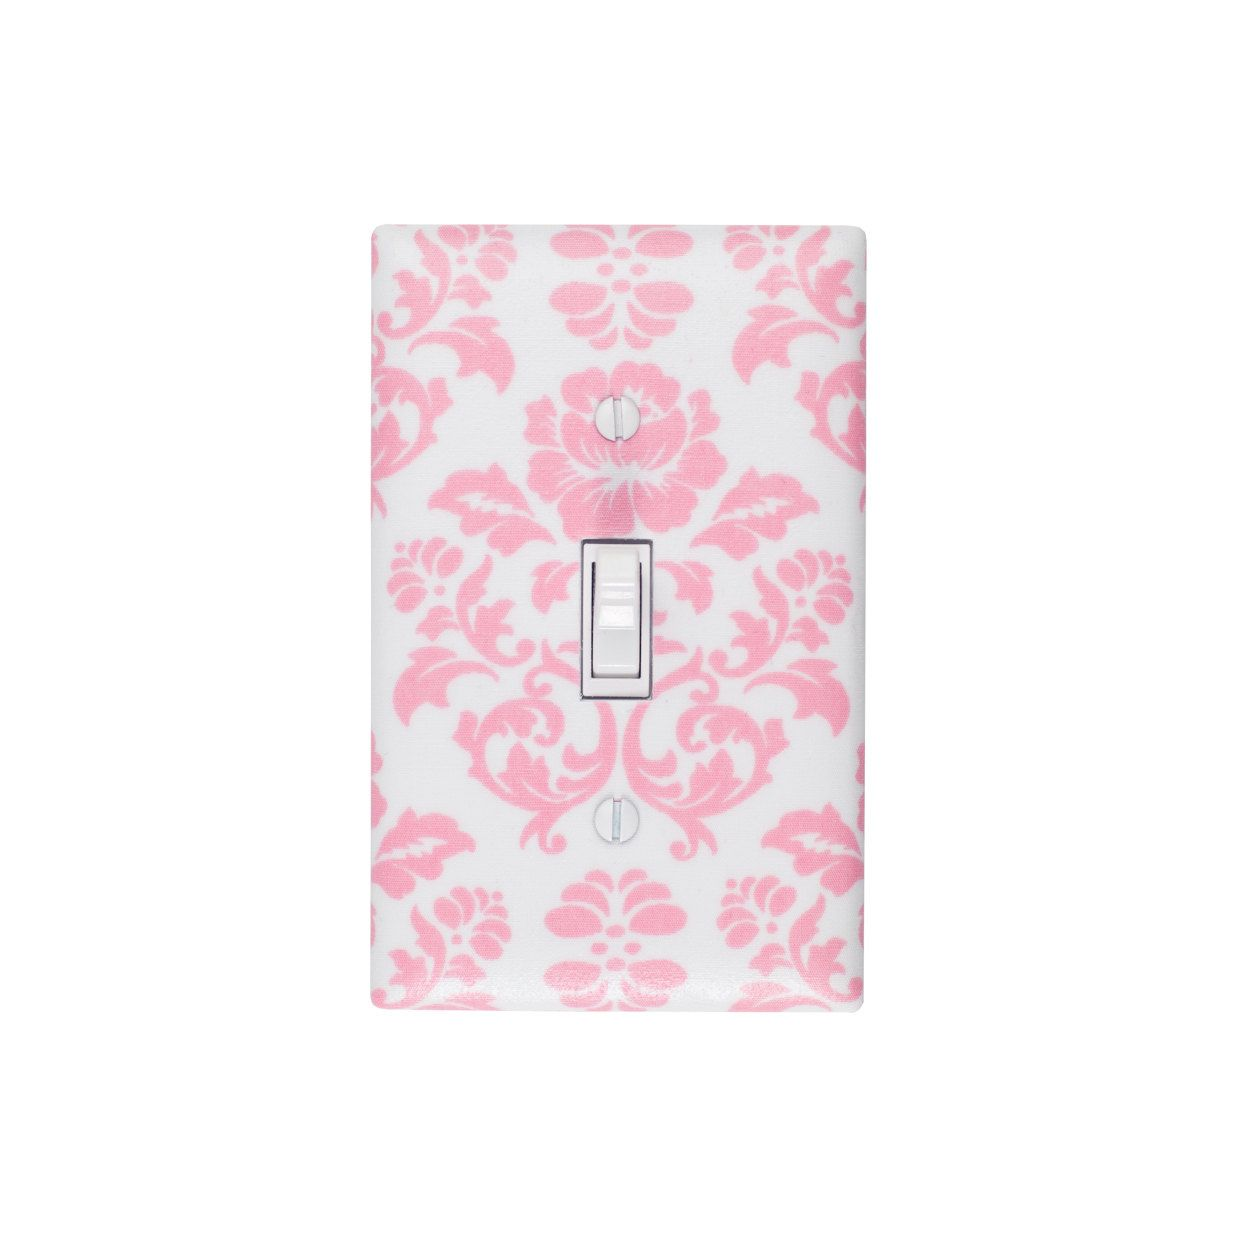 Damask Light Switch Plate Cover / Pink and White / by SSKDesigns, $16.00